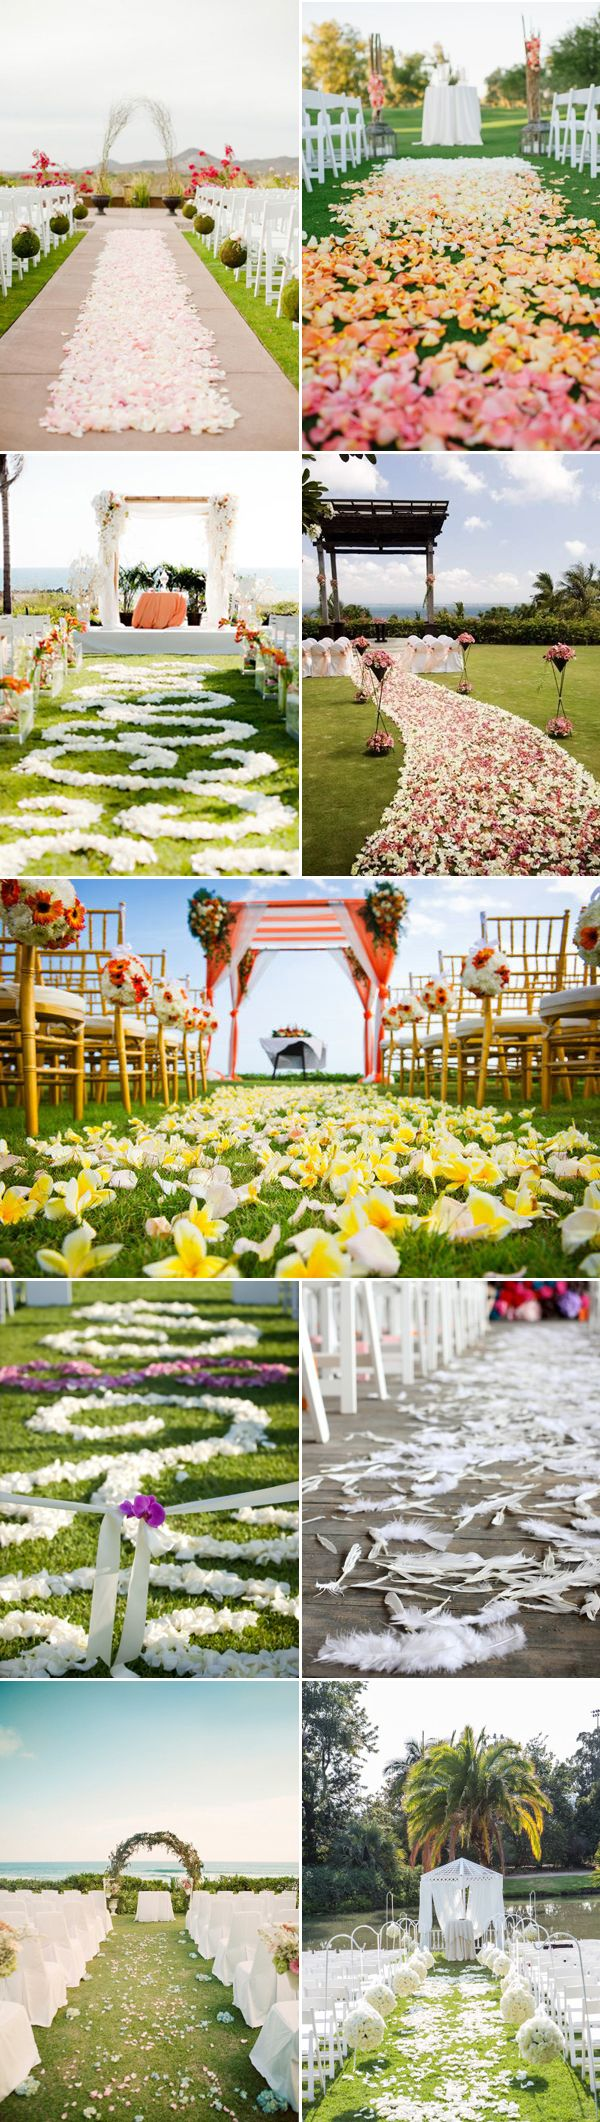 25  Wedding Aisle Runner Ideas for Your Big Day | http://www.deerpearlflowers.com/wedding-aisle-runner-ideas-for-your-big-day/